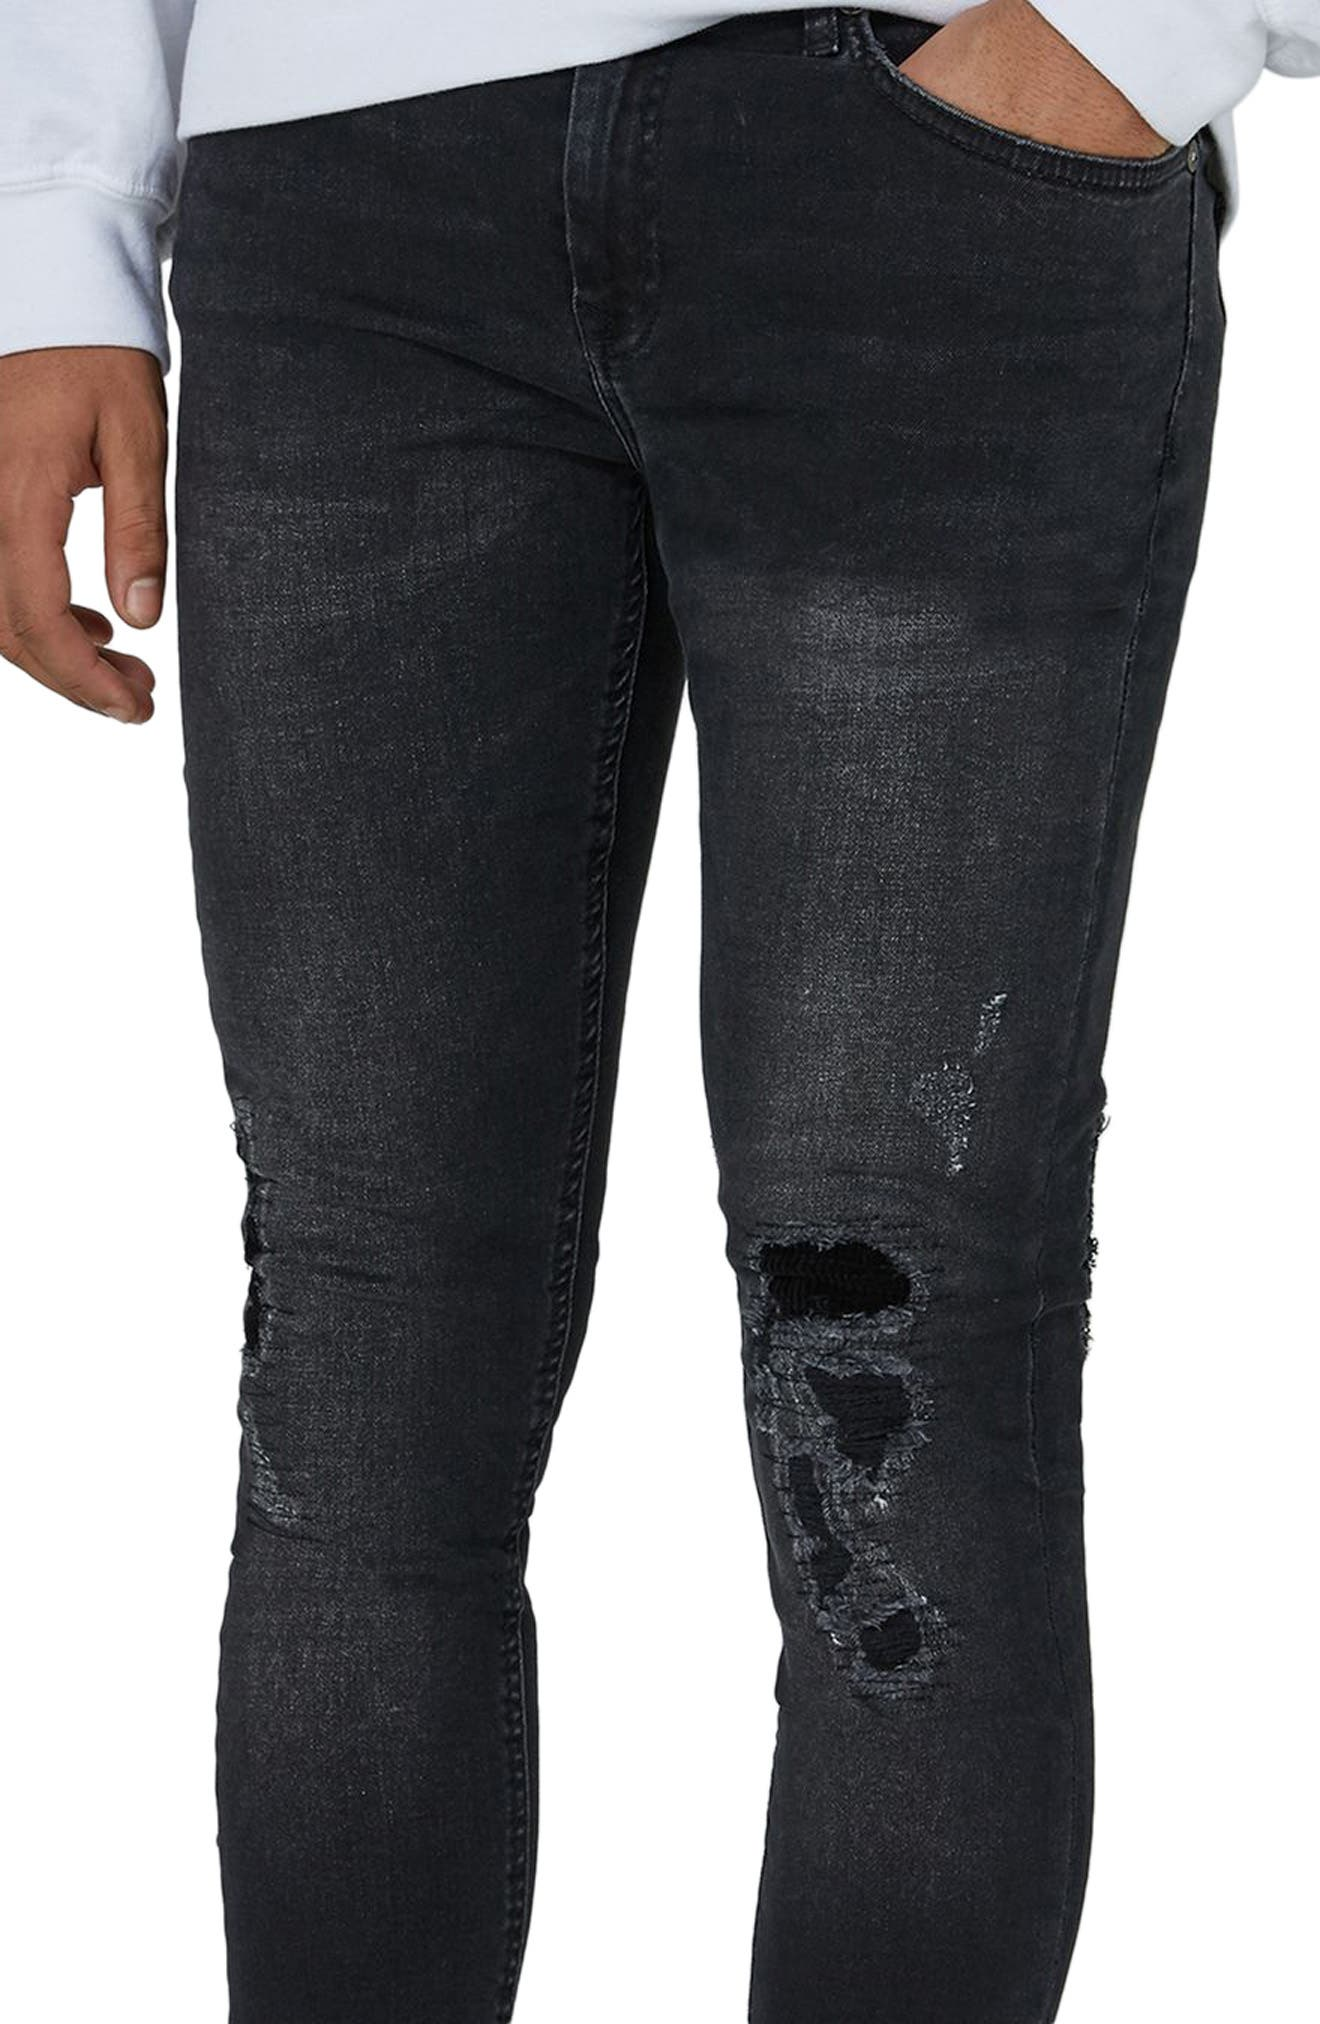 Repair Spray-On Skinny Fit Jeans,                             Alternate thumbnail 3, color,                             001